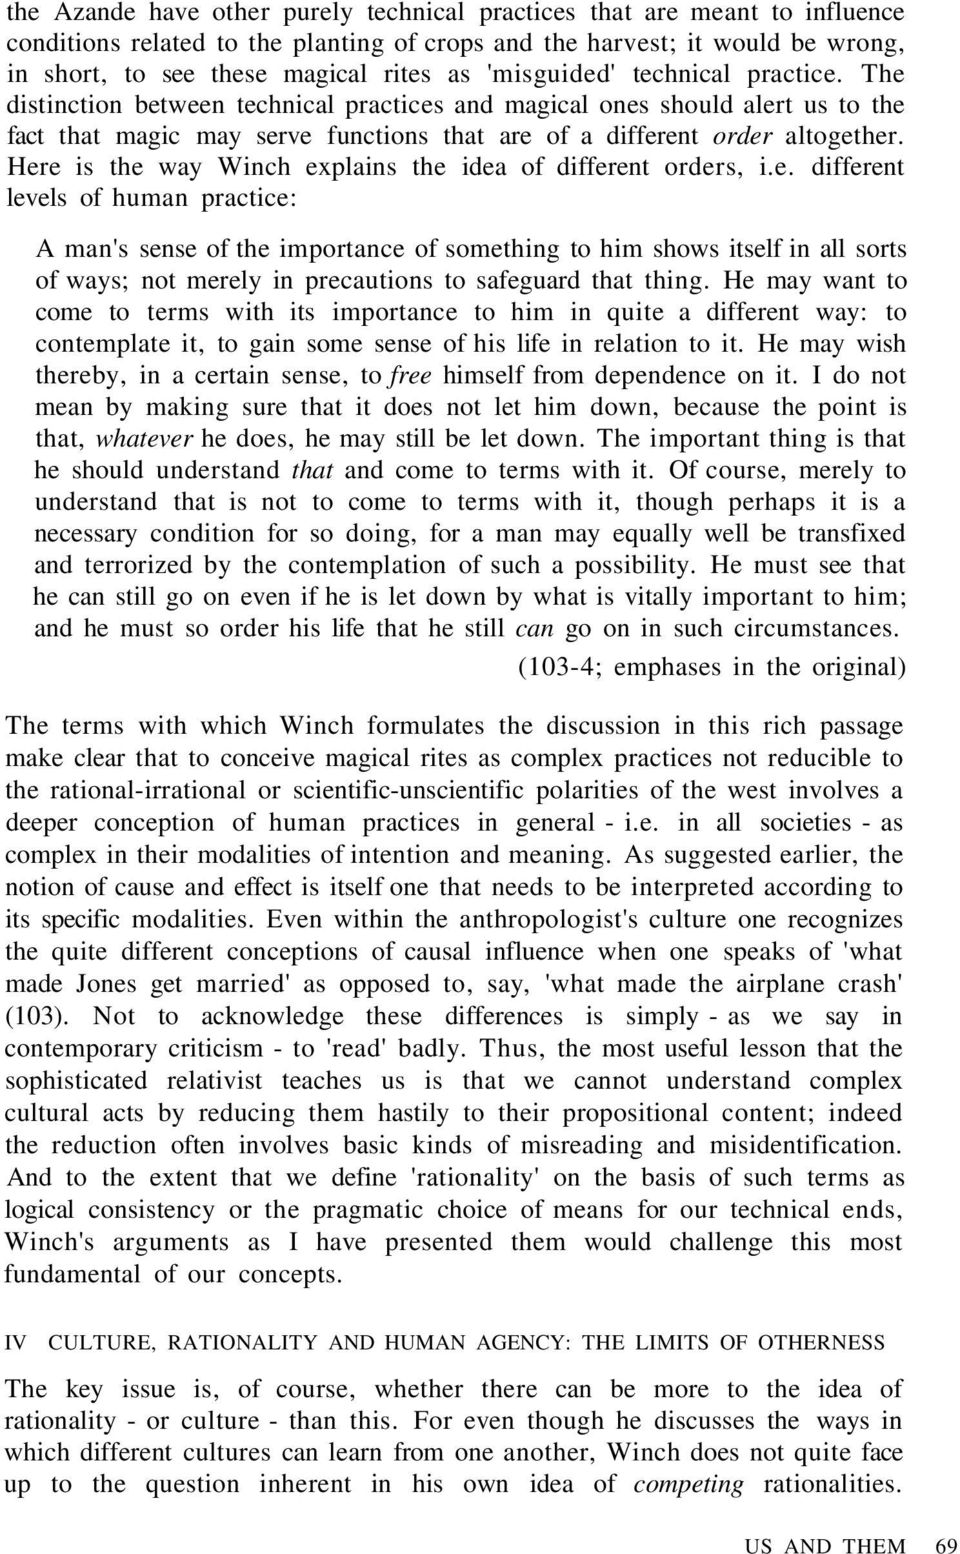 Here is the way Winch explains the idea of different orders, i.e. different levels of human practice: A man's sense of the importance of something to him shows itself in all sorts of ways; not merely in precautions to safeguard that thing.